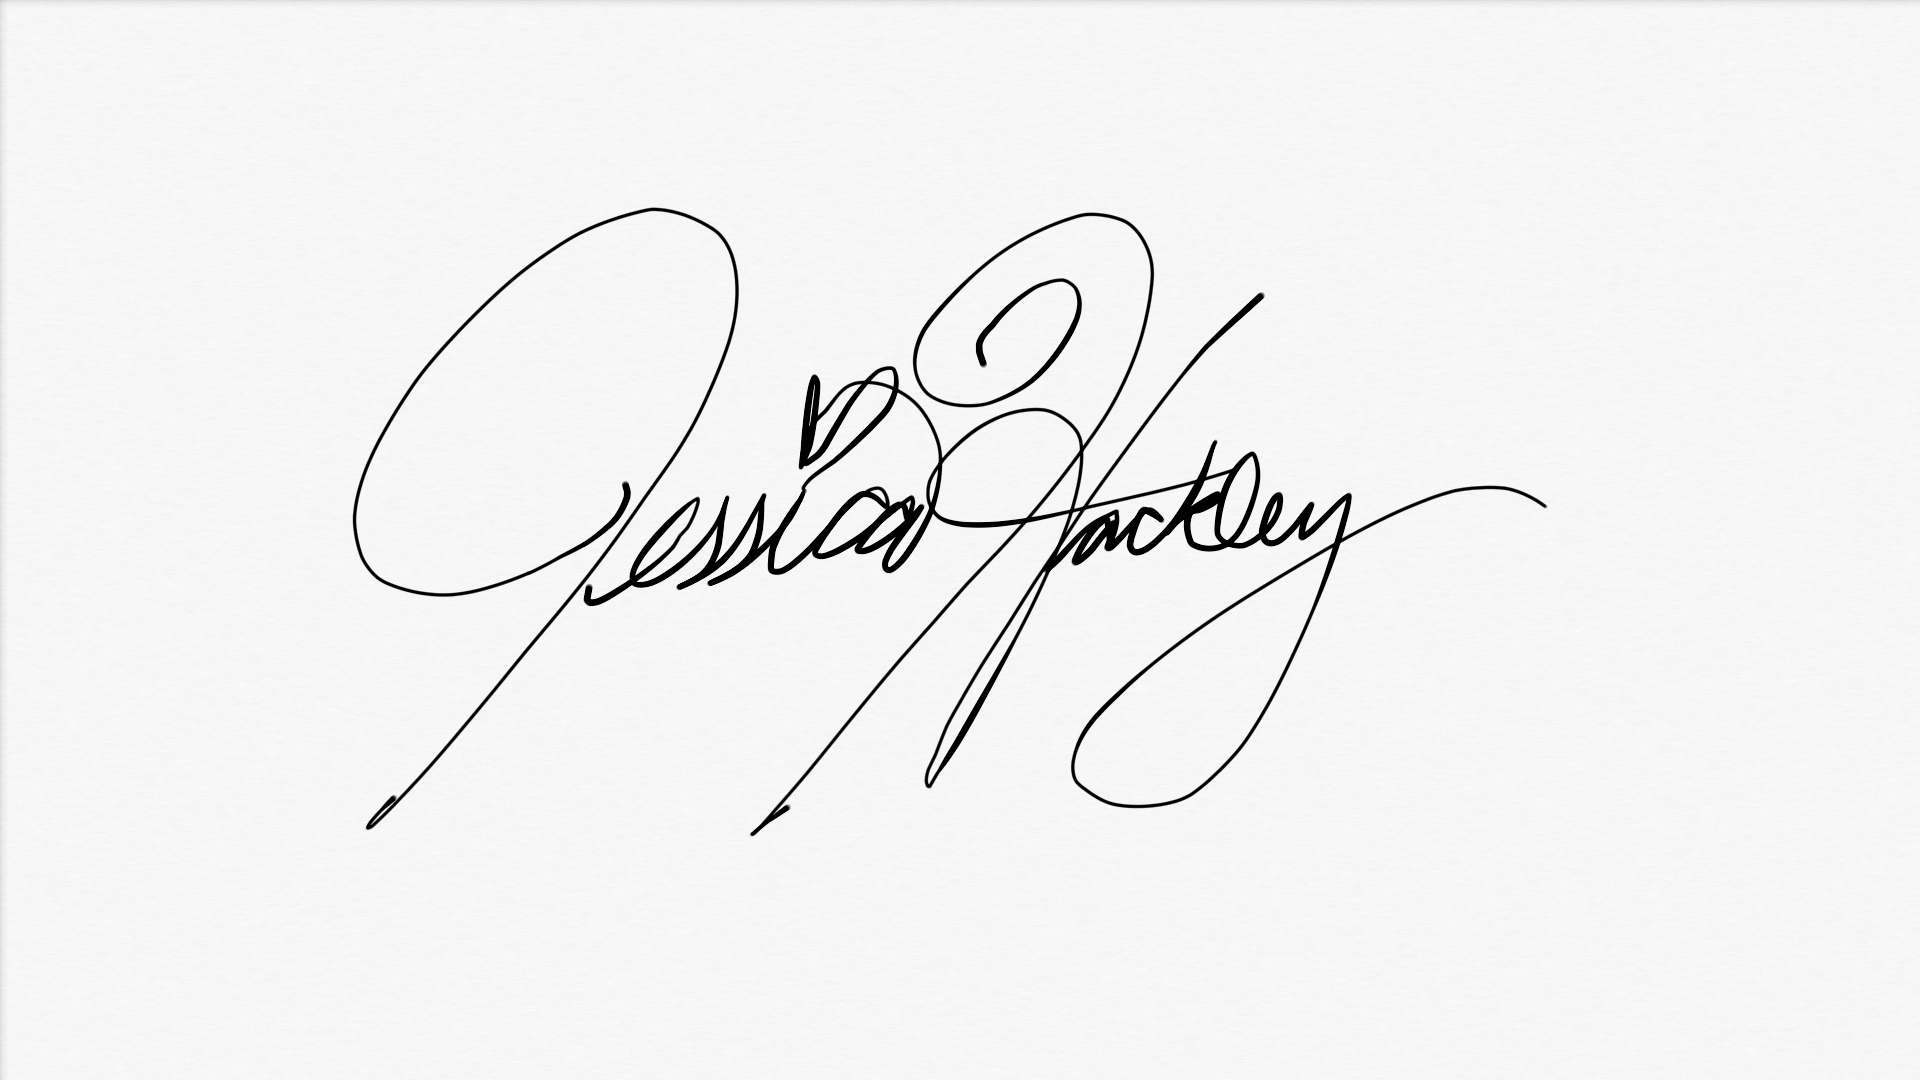 Jessica Hackley Signature